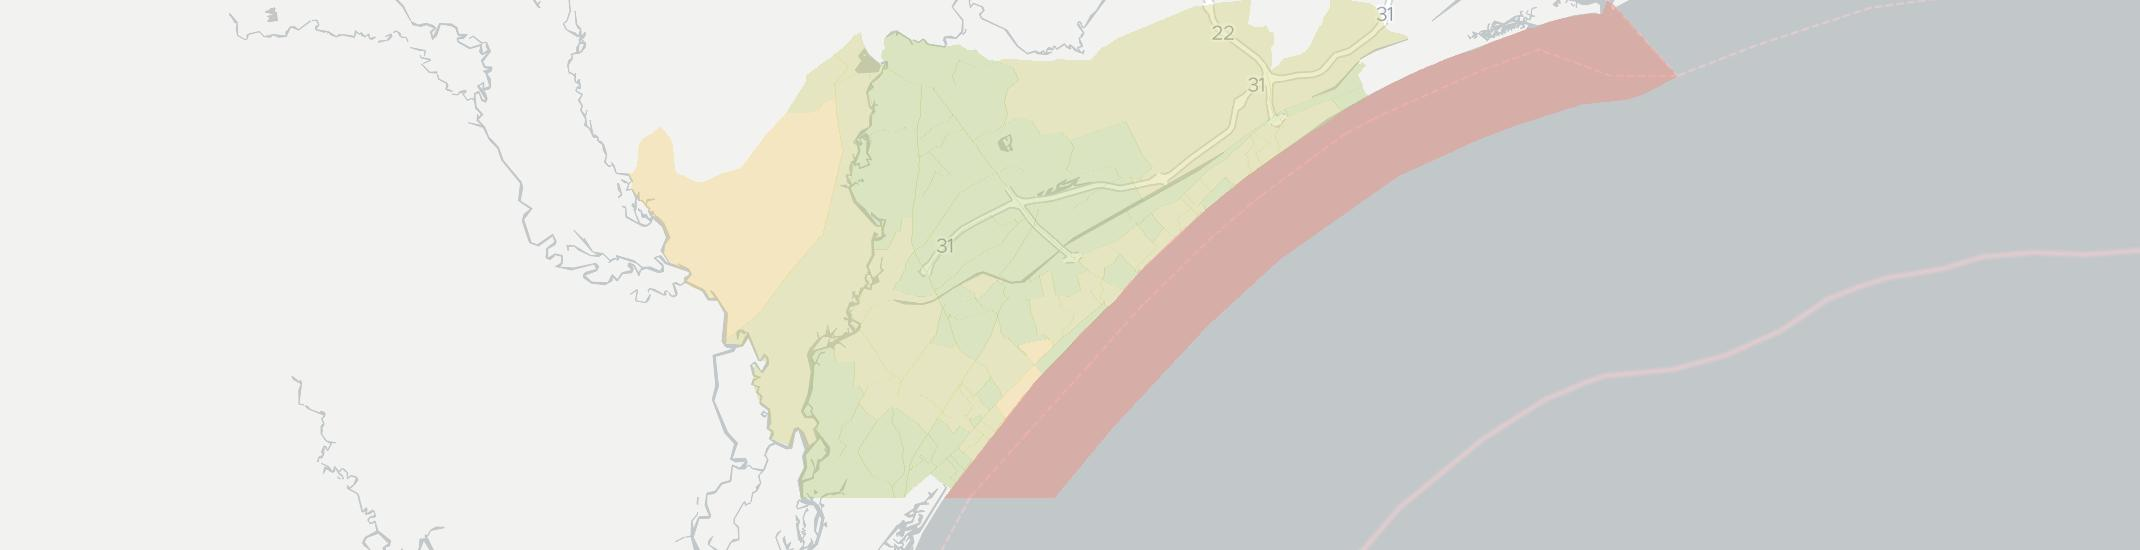 Myrtle Beach Internet Competition Map. Click for interactive map.